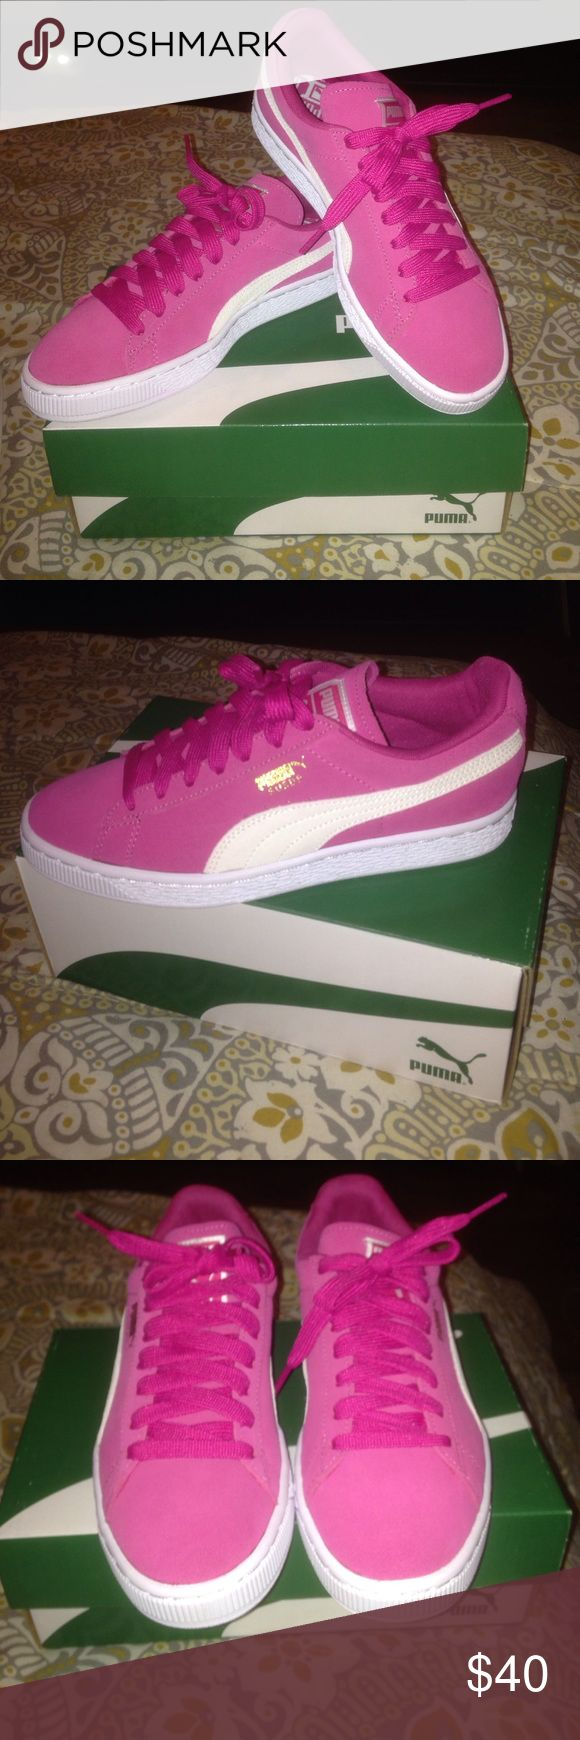 Pink Puma suedes fuchsia purple-puma white. womens 7. never worn still have box. asking for $40 or best offer. Puma Shoes Sneakers